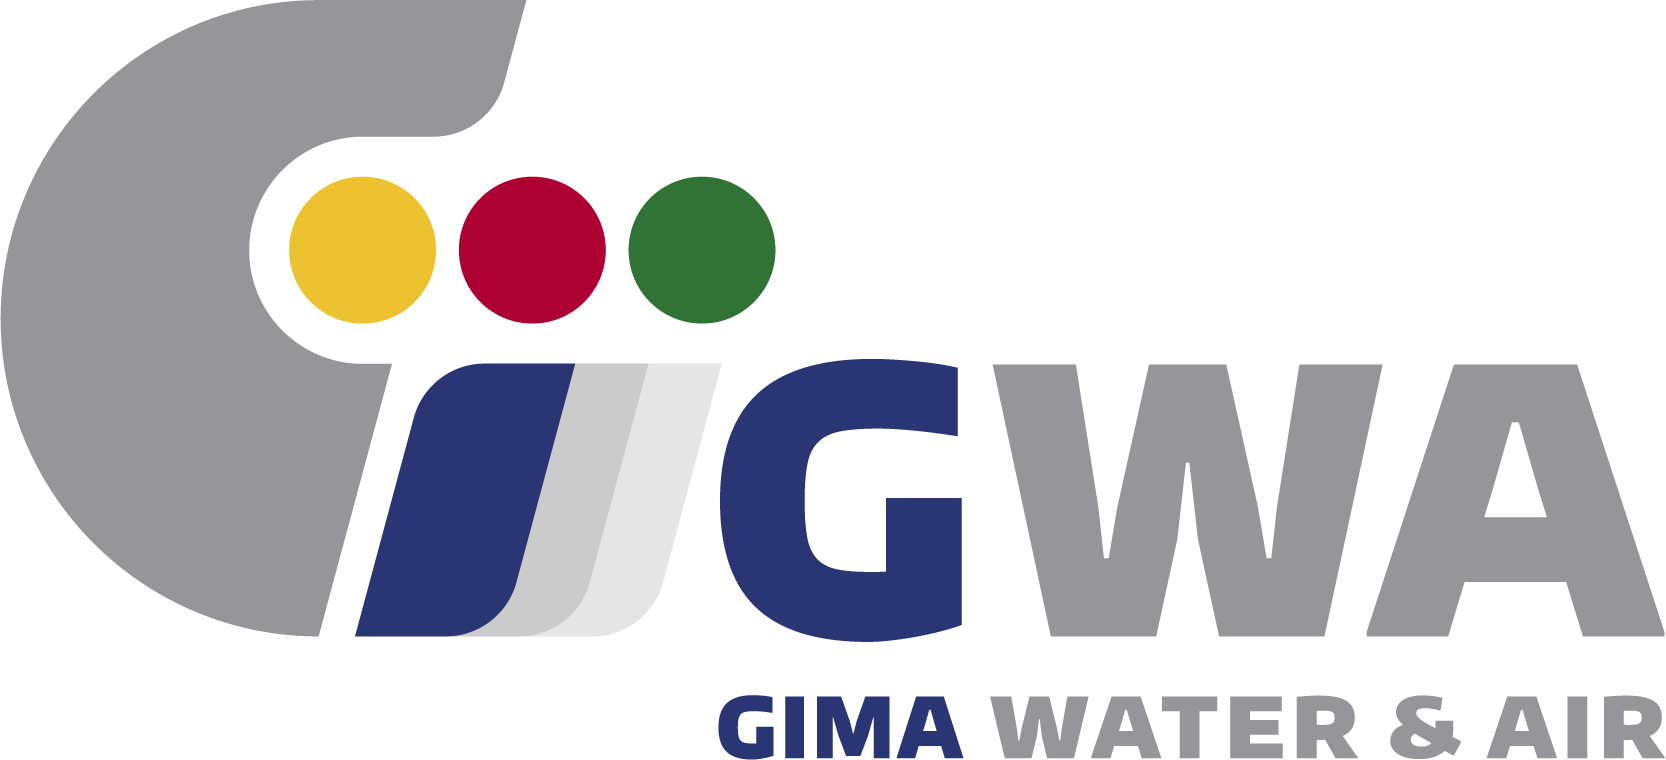 GWA  – Gima Water & Air